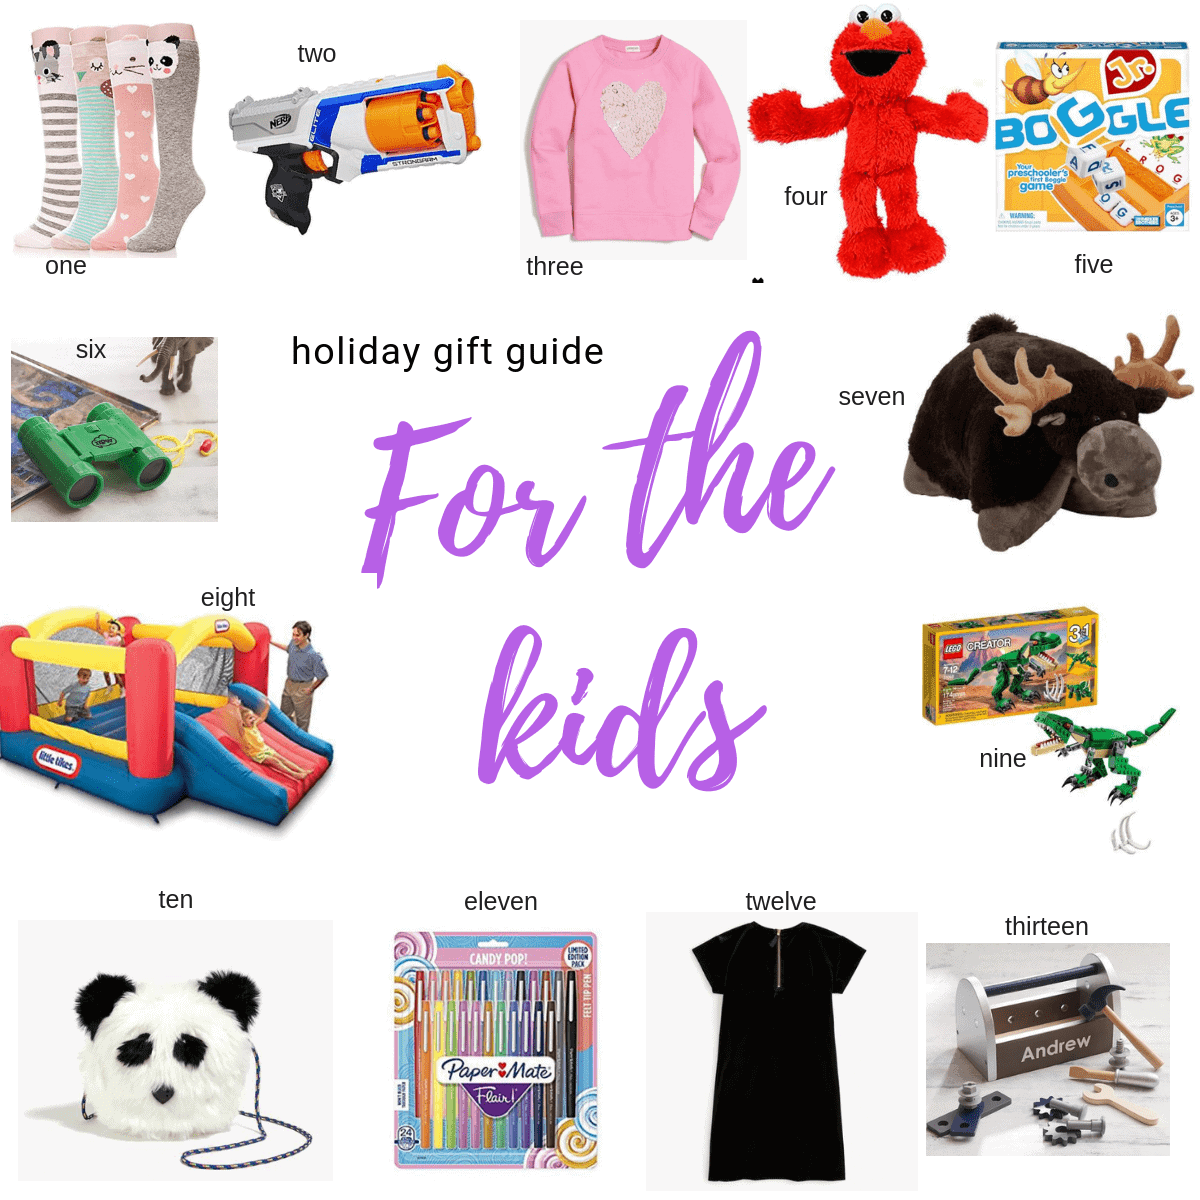 for the kids gift guide items